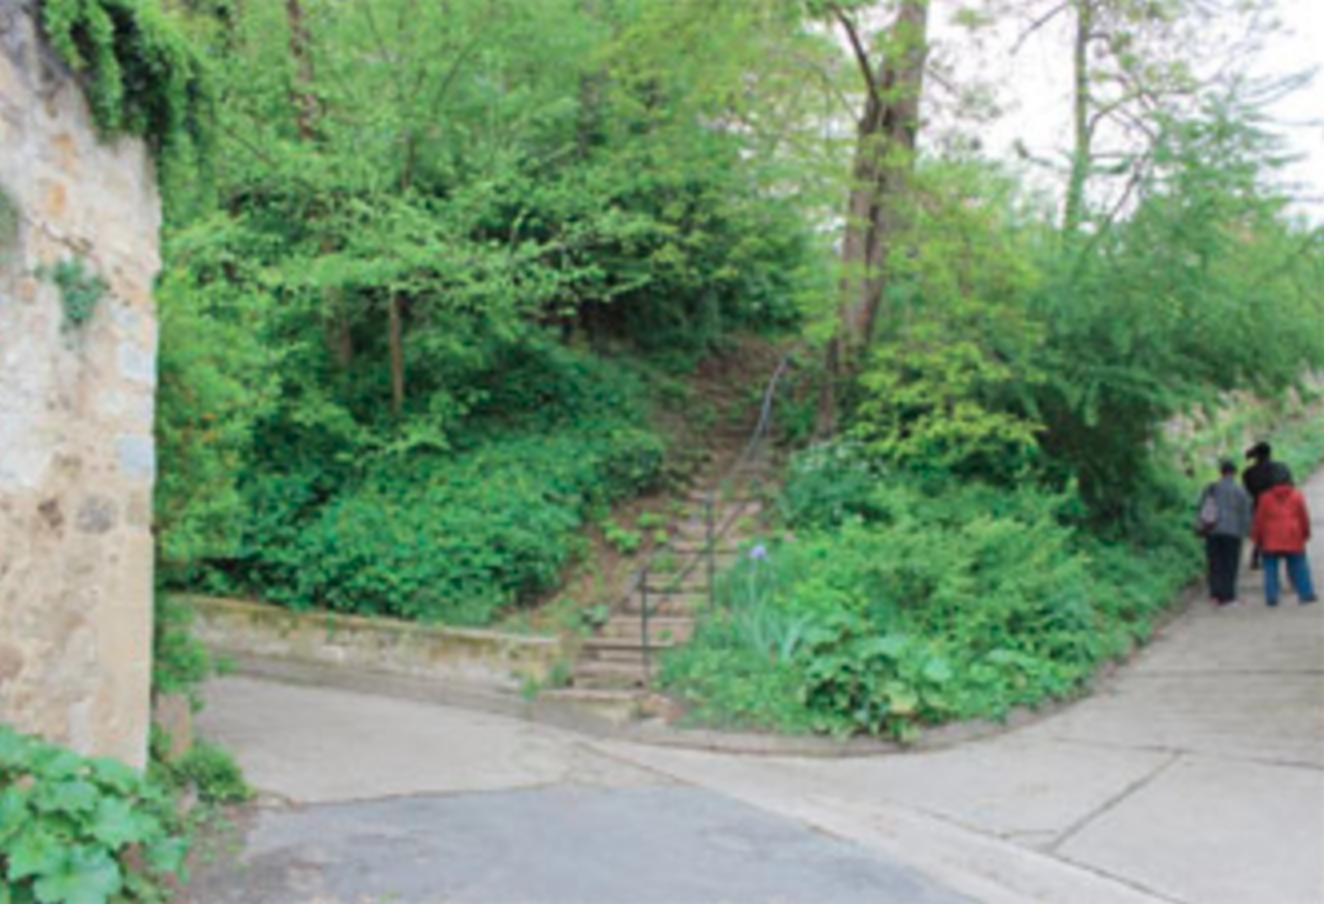 Content Image: Current view of stairway at Auvers. Photo by Alex Roediger. Fair Use